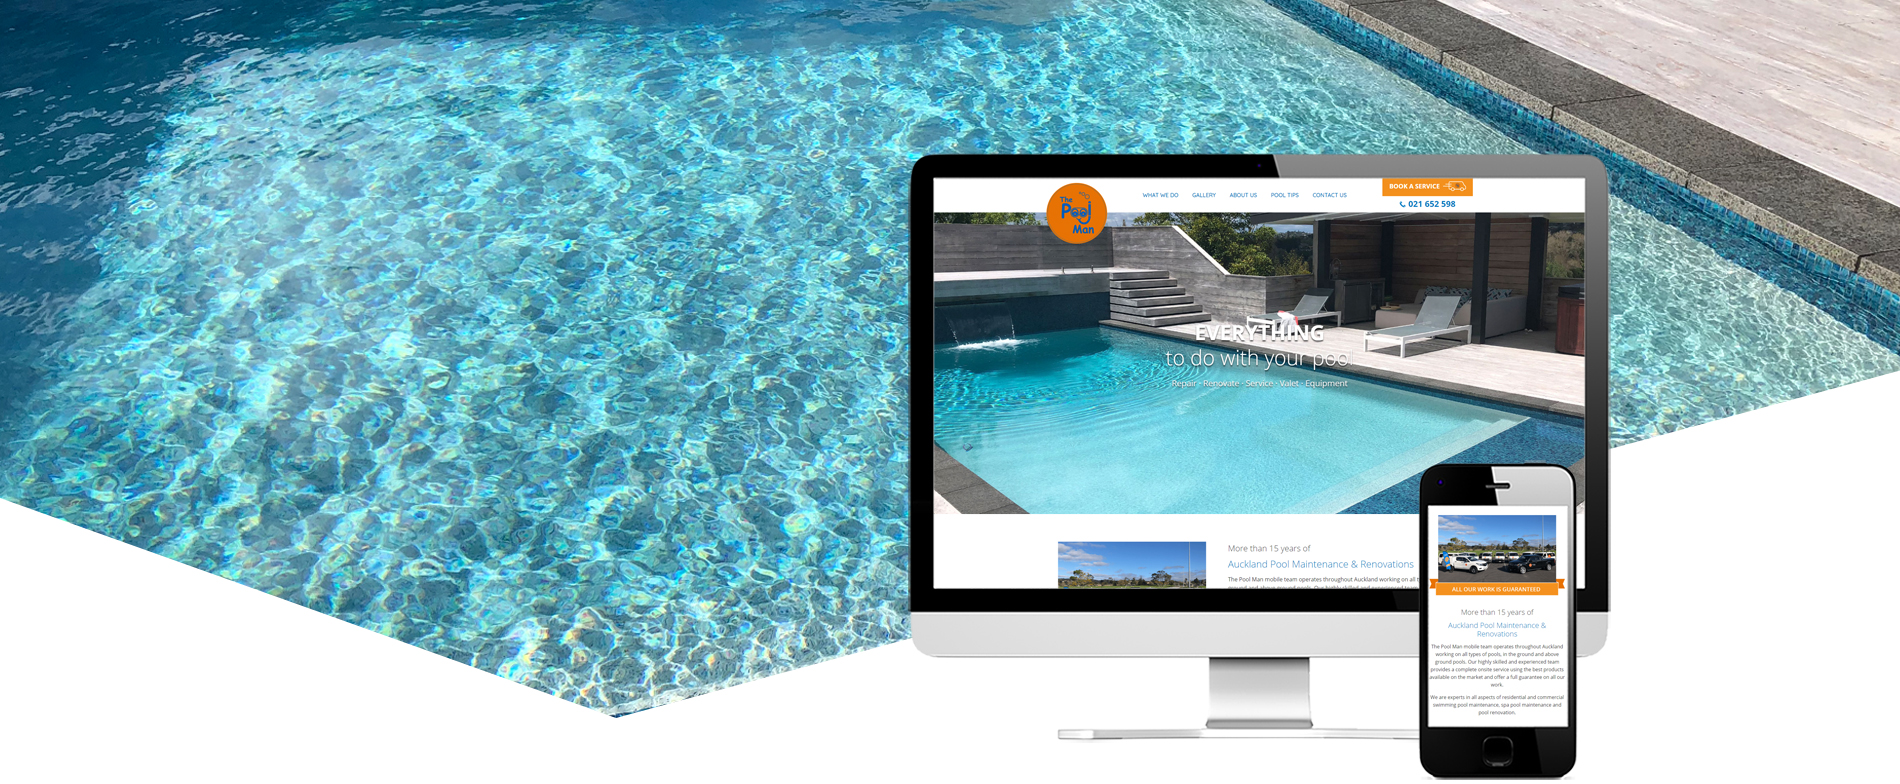 New website for the pool man